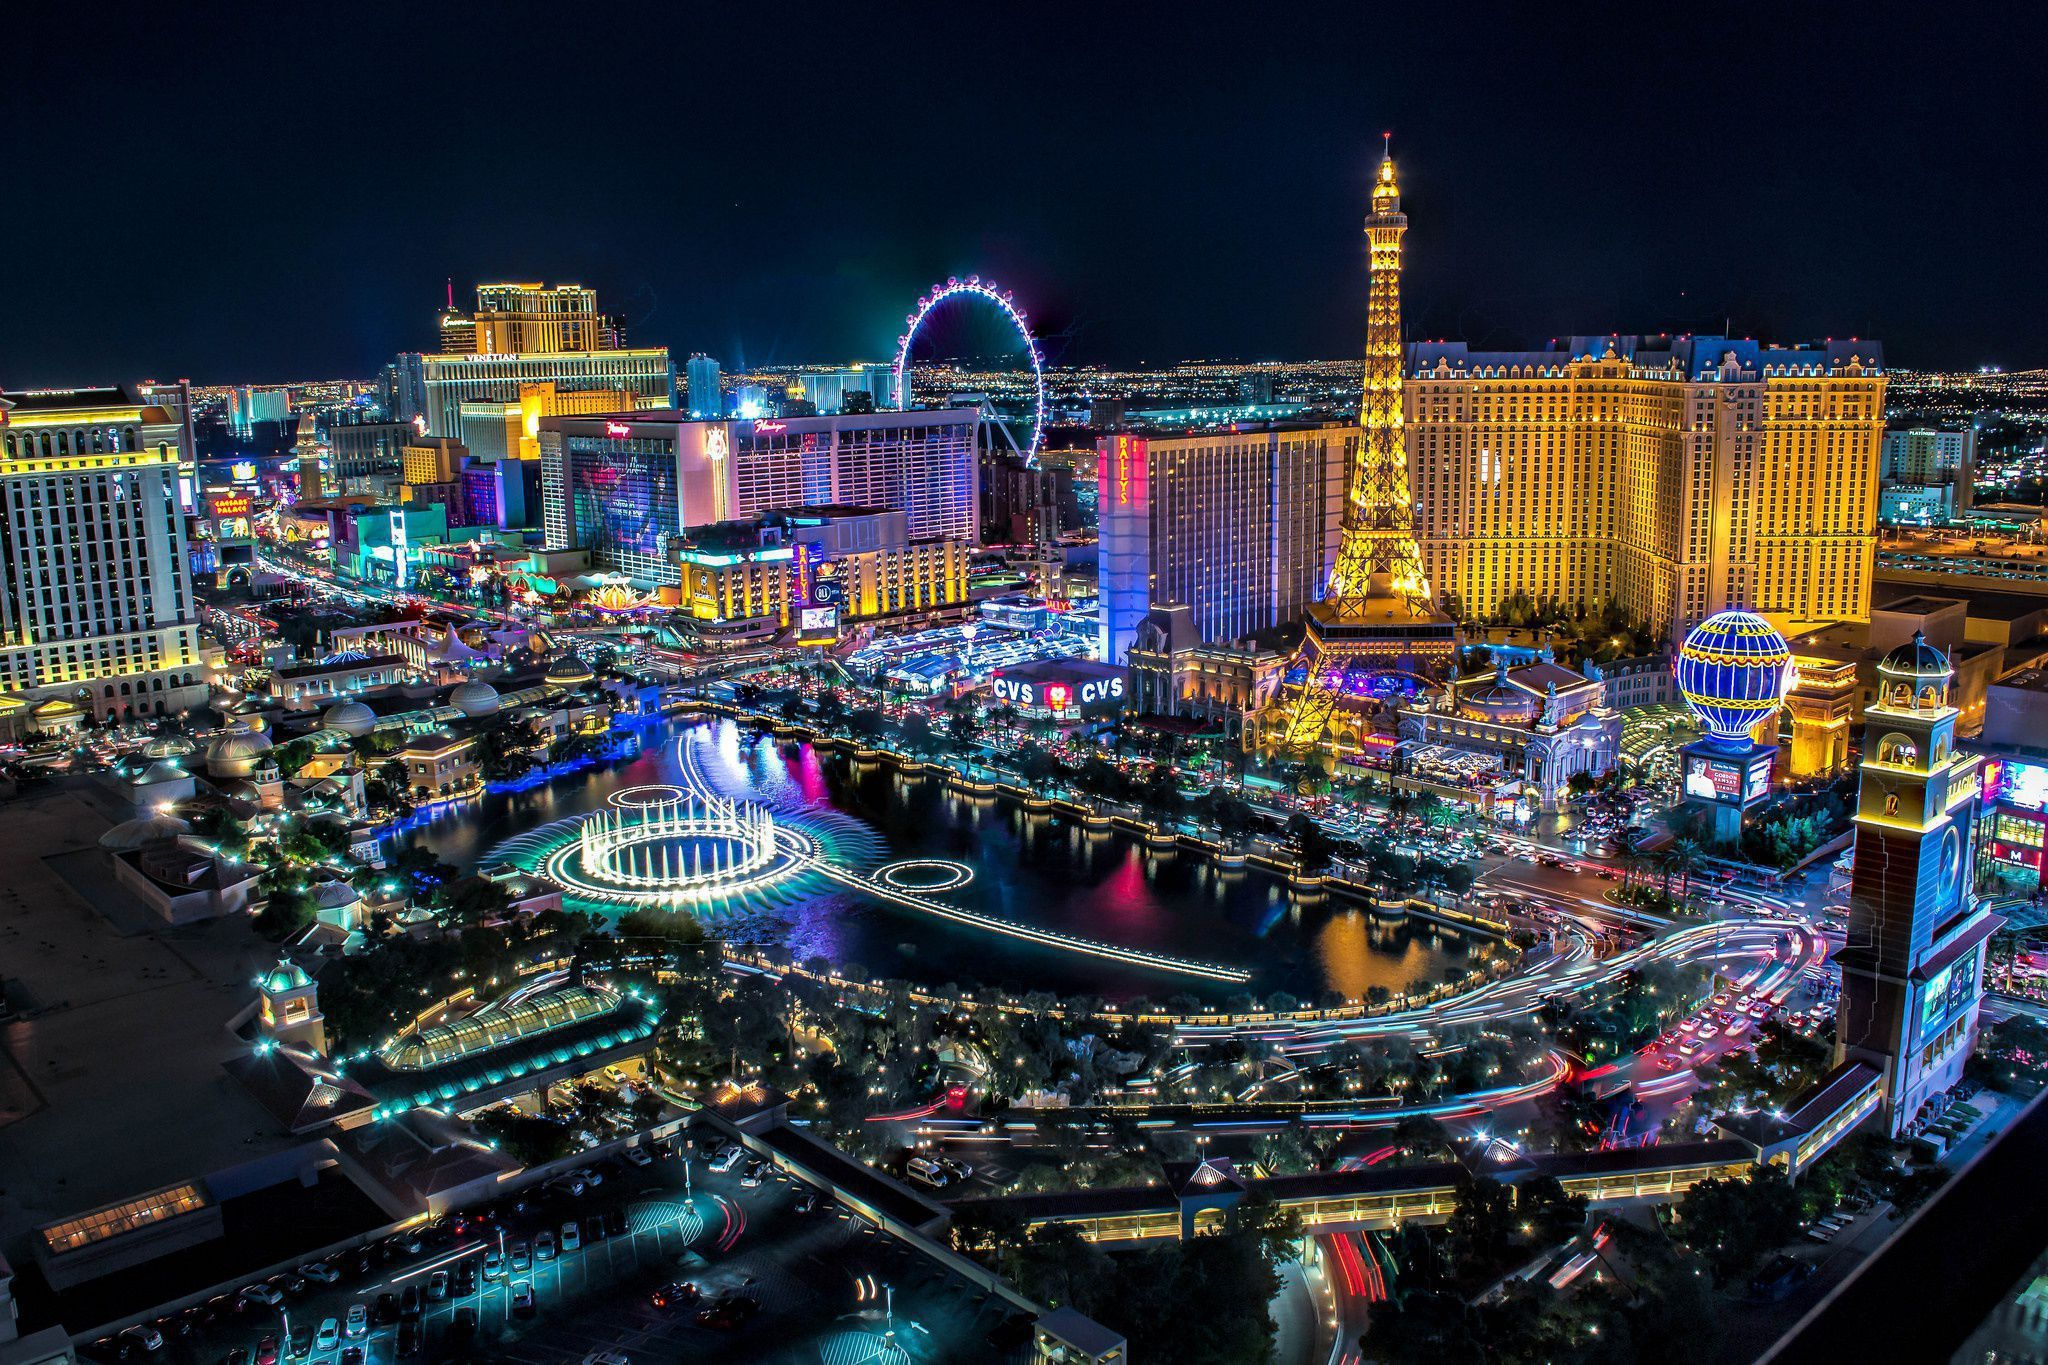 Las Vegas Wallpaper Phone Desktop Wallpaper Box Las Vegas Resorts City Lights At Night Las Vegas